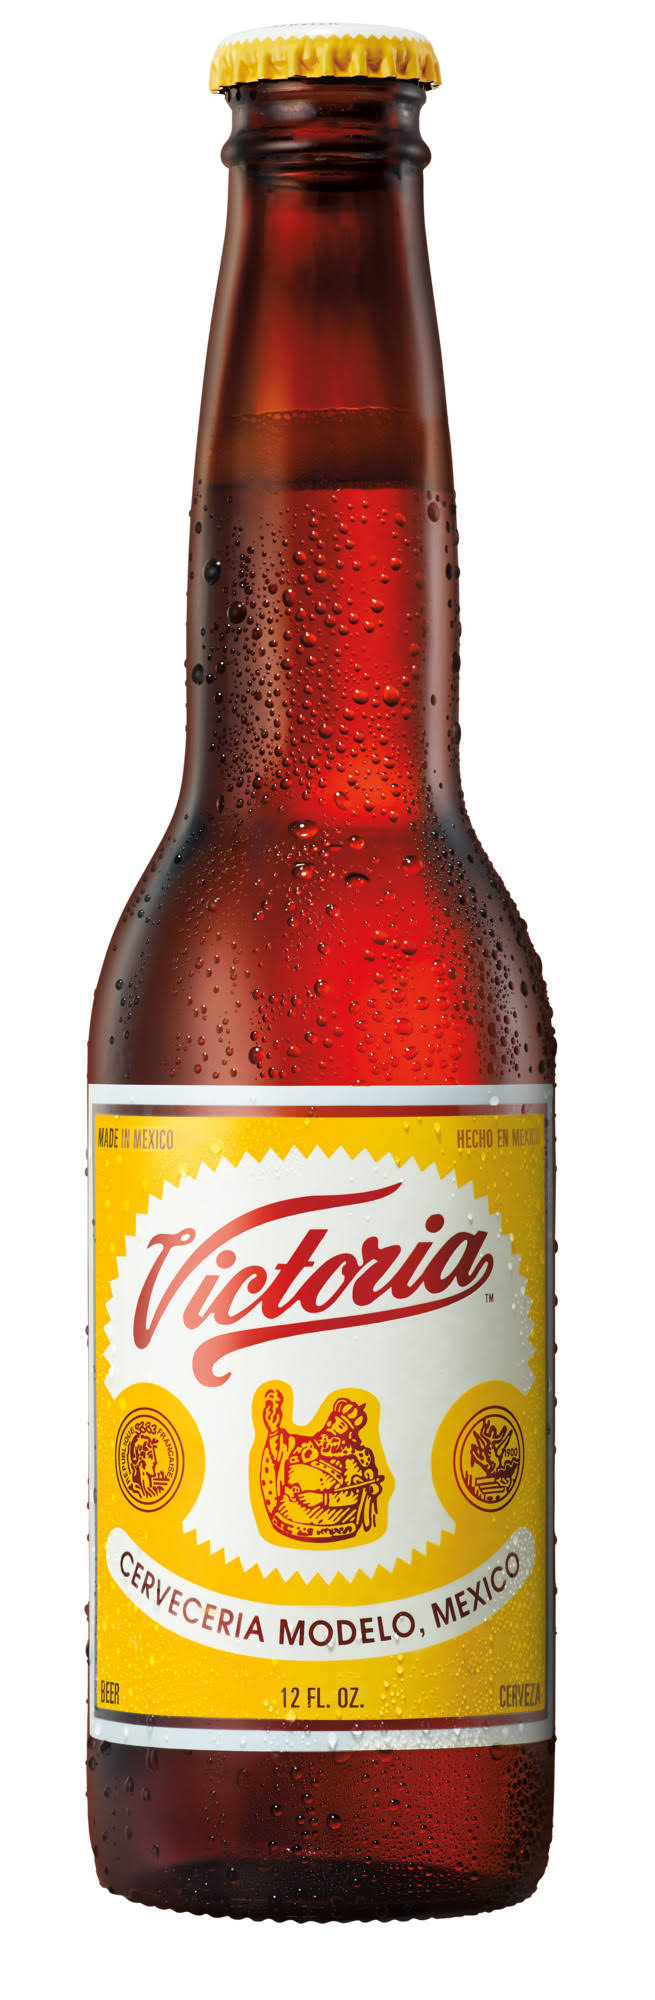 Victoria Beer - 12 fl oz